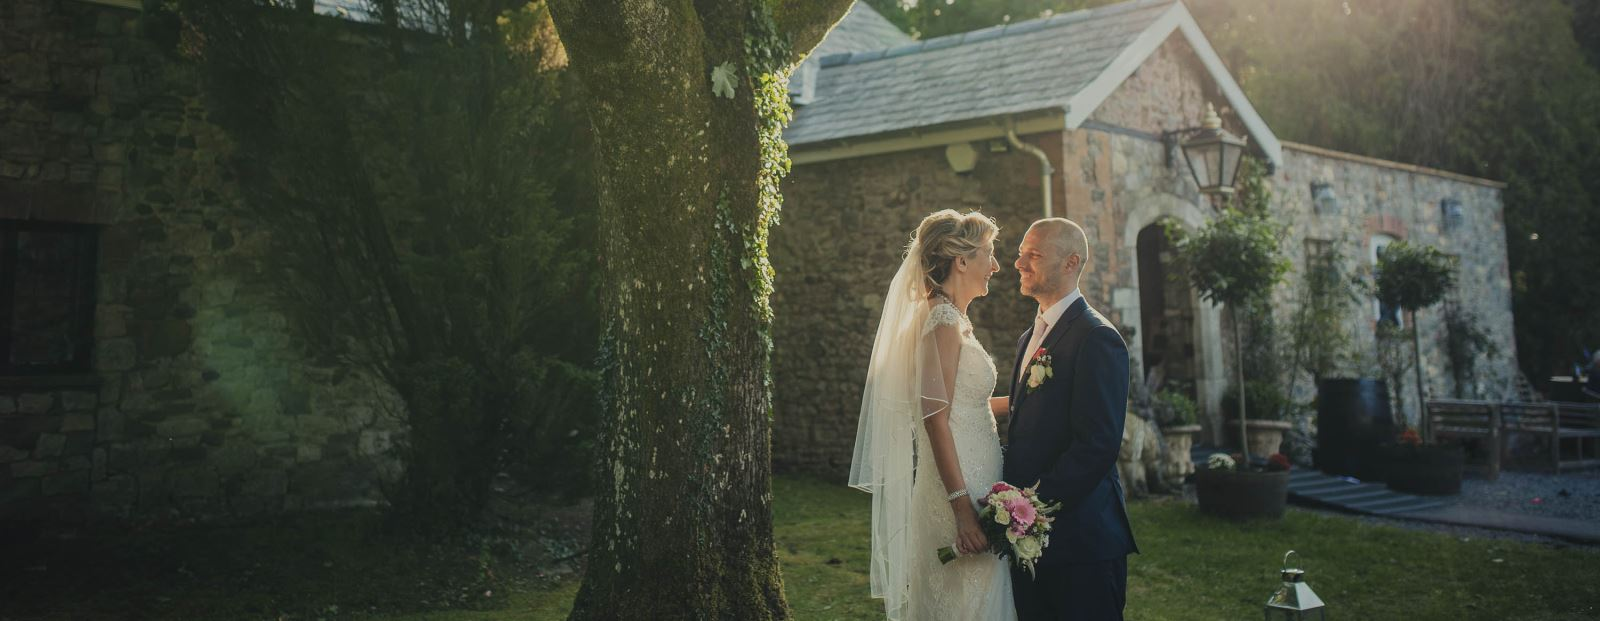 Wedding venues South Wales